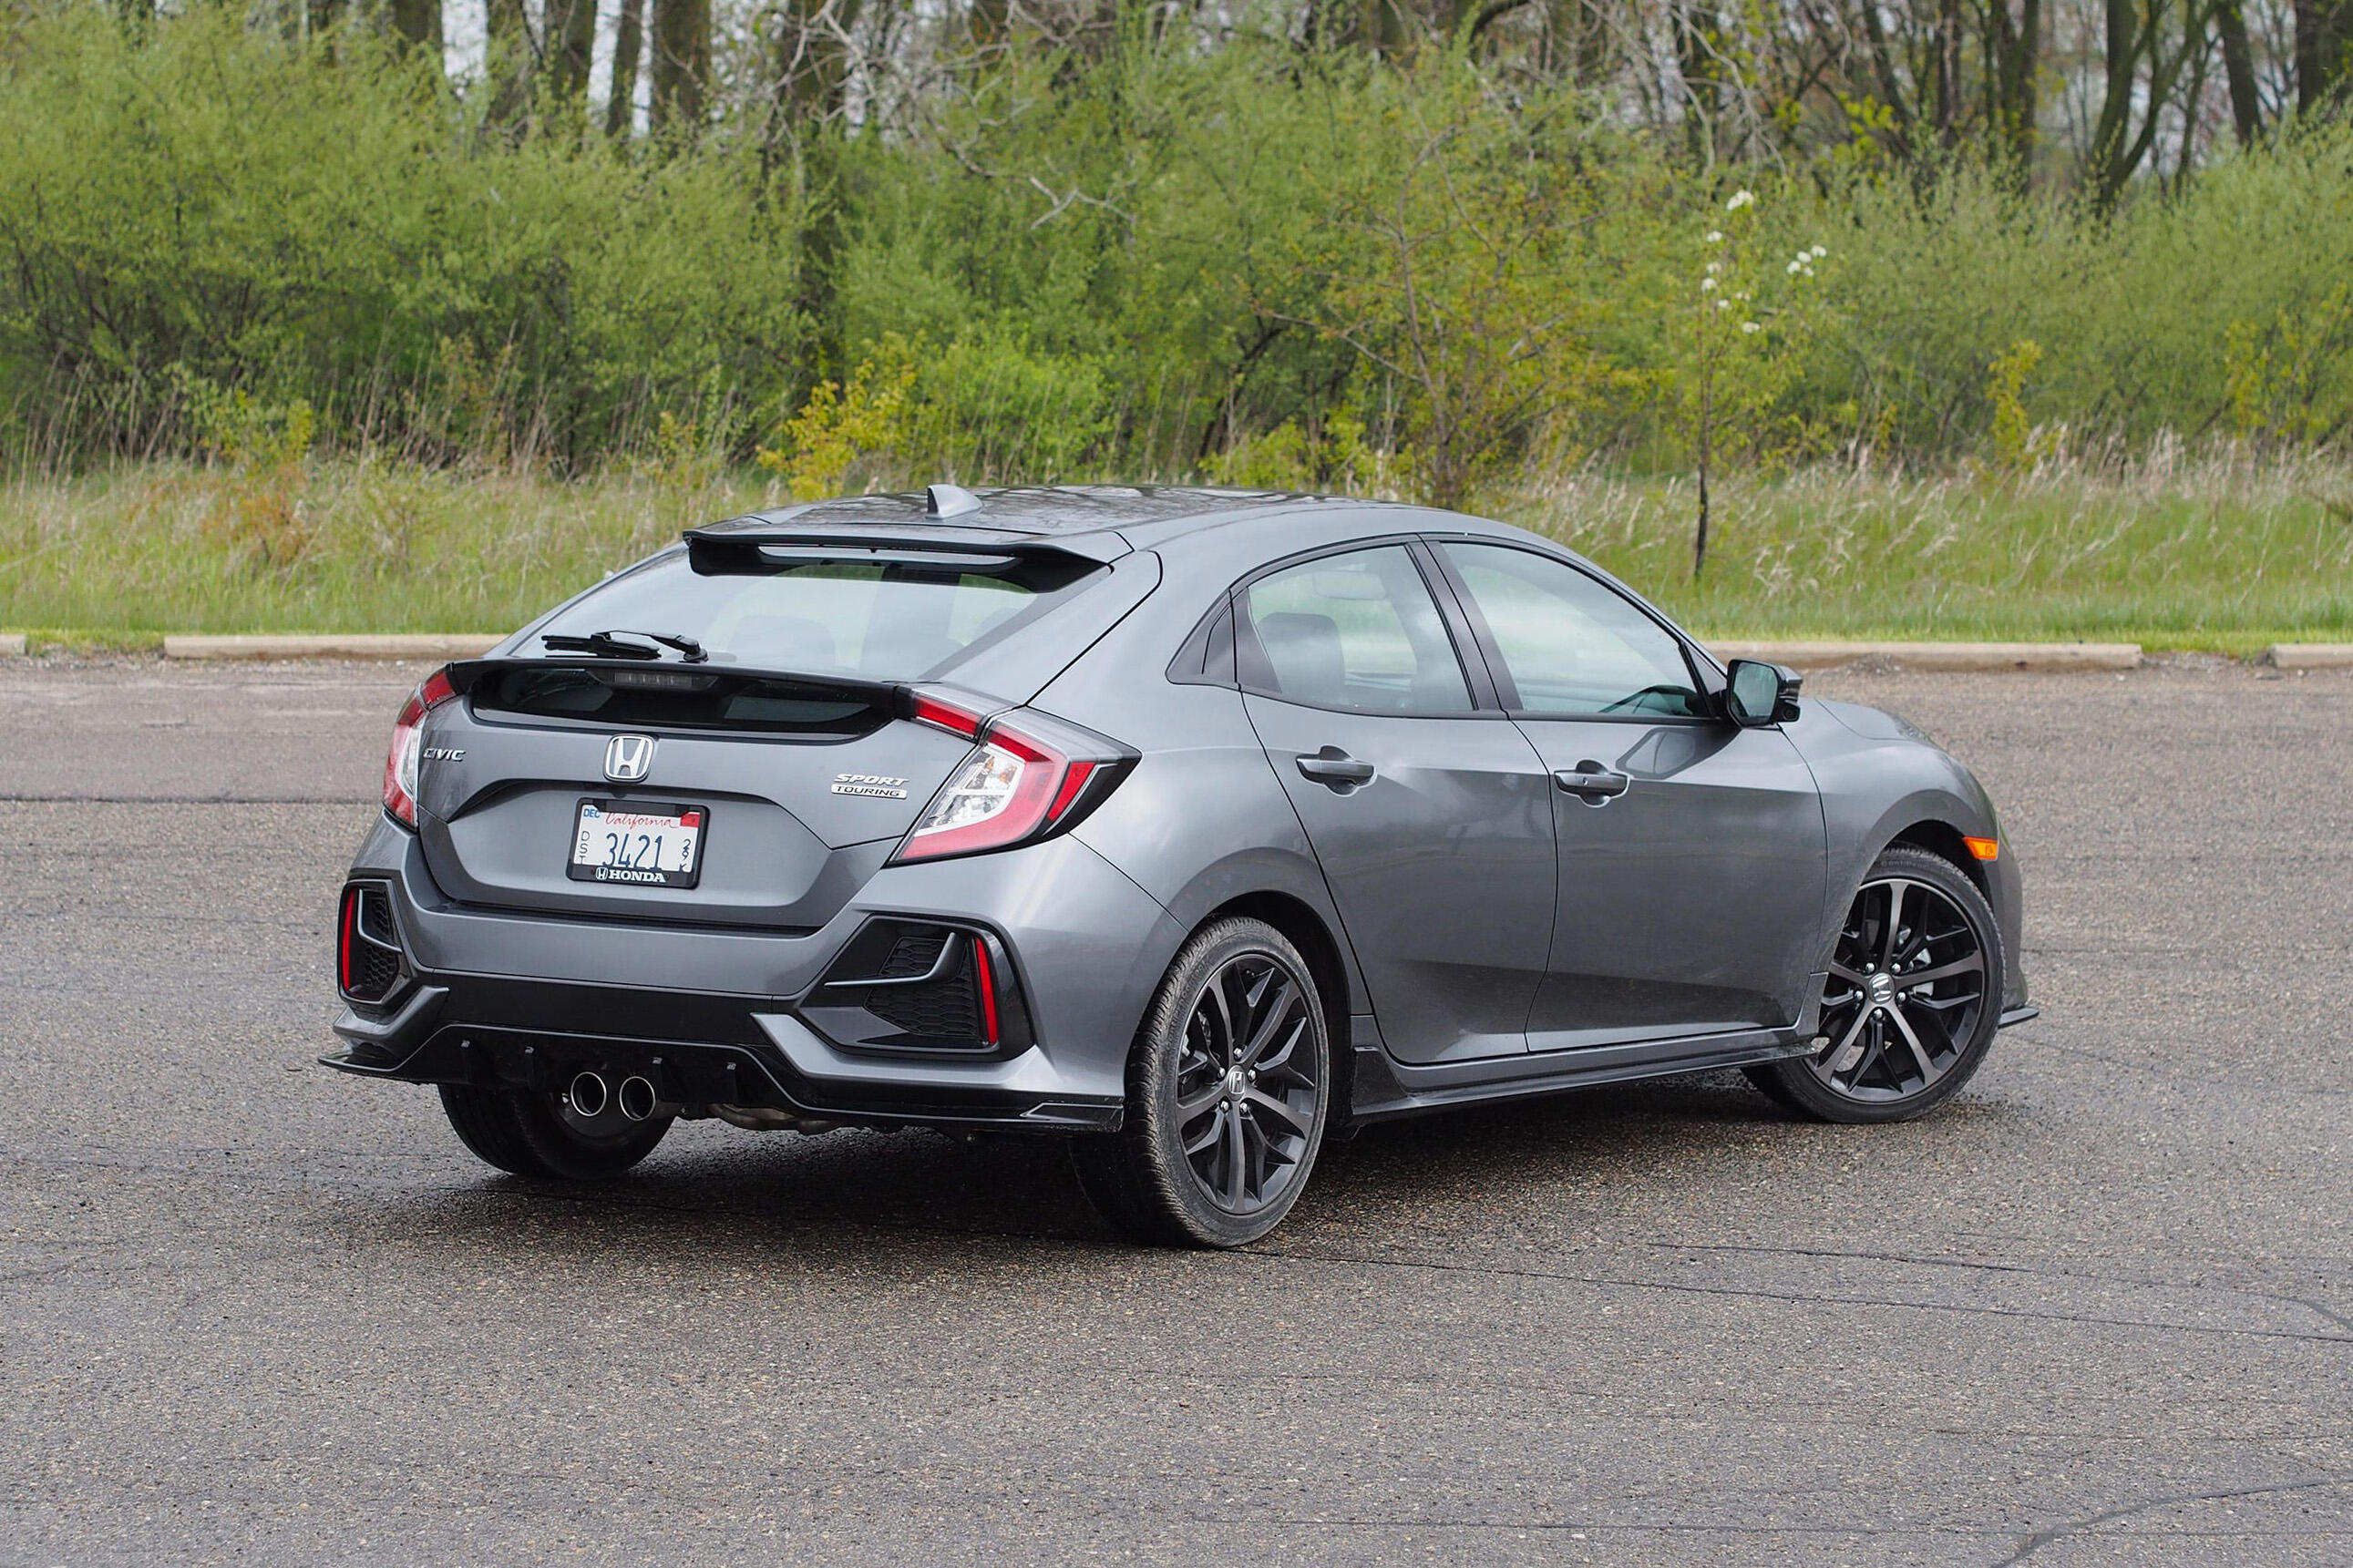 2021 Honda Civic Hatchback Reviews News Pictures And Video Roadshow